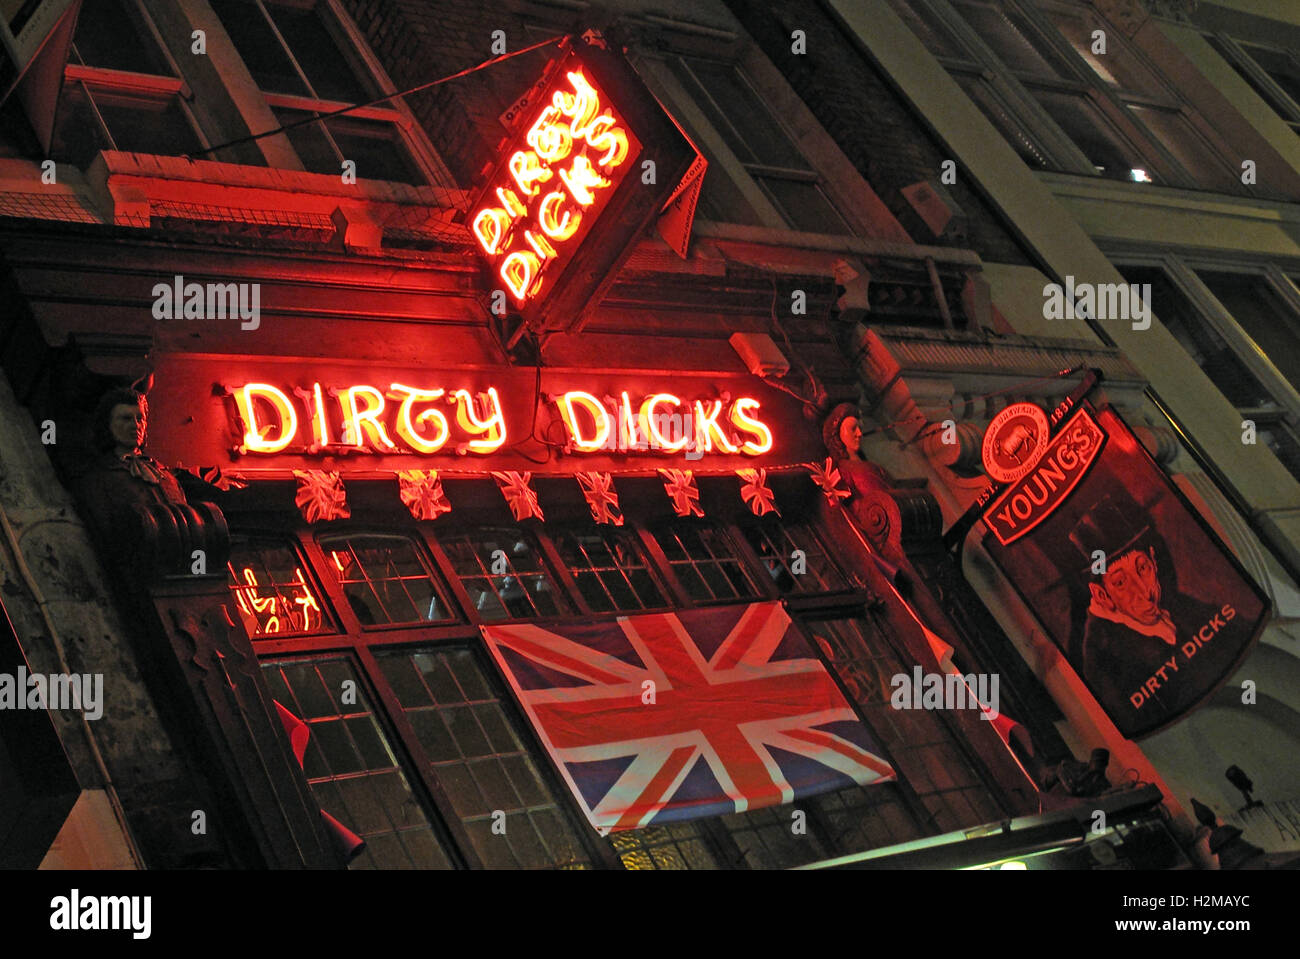 Britain,British,night,sign,Central,Capital,City,Aldgate,east,EC3,bar,boozer,England,English,London,Public,signs,Electric,Tower,hamlets,UK,United Kingdom,Youngs,Brewery,18th,Century,Victorian,historic,travel,tourist,tourism,CAMRA,ale,ales,famous,Liverpool Street,Dirty Dicks,Public House,GoTonySmith,@HotpixUK,Tony,Smith,different,unique,pubs,bars,of,London,classic,tourist,attraction,travel,vacation,Buy Pictures of,Buy Images Of,Images of,Stock Images,Tony Smith,Photo of,Pubs Of London,must see